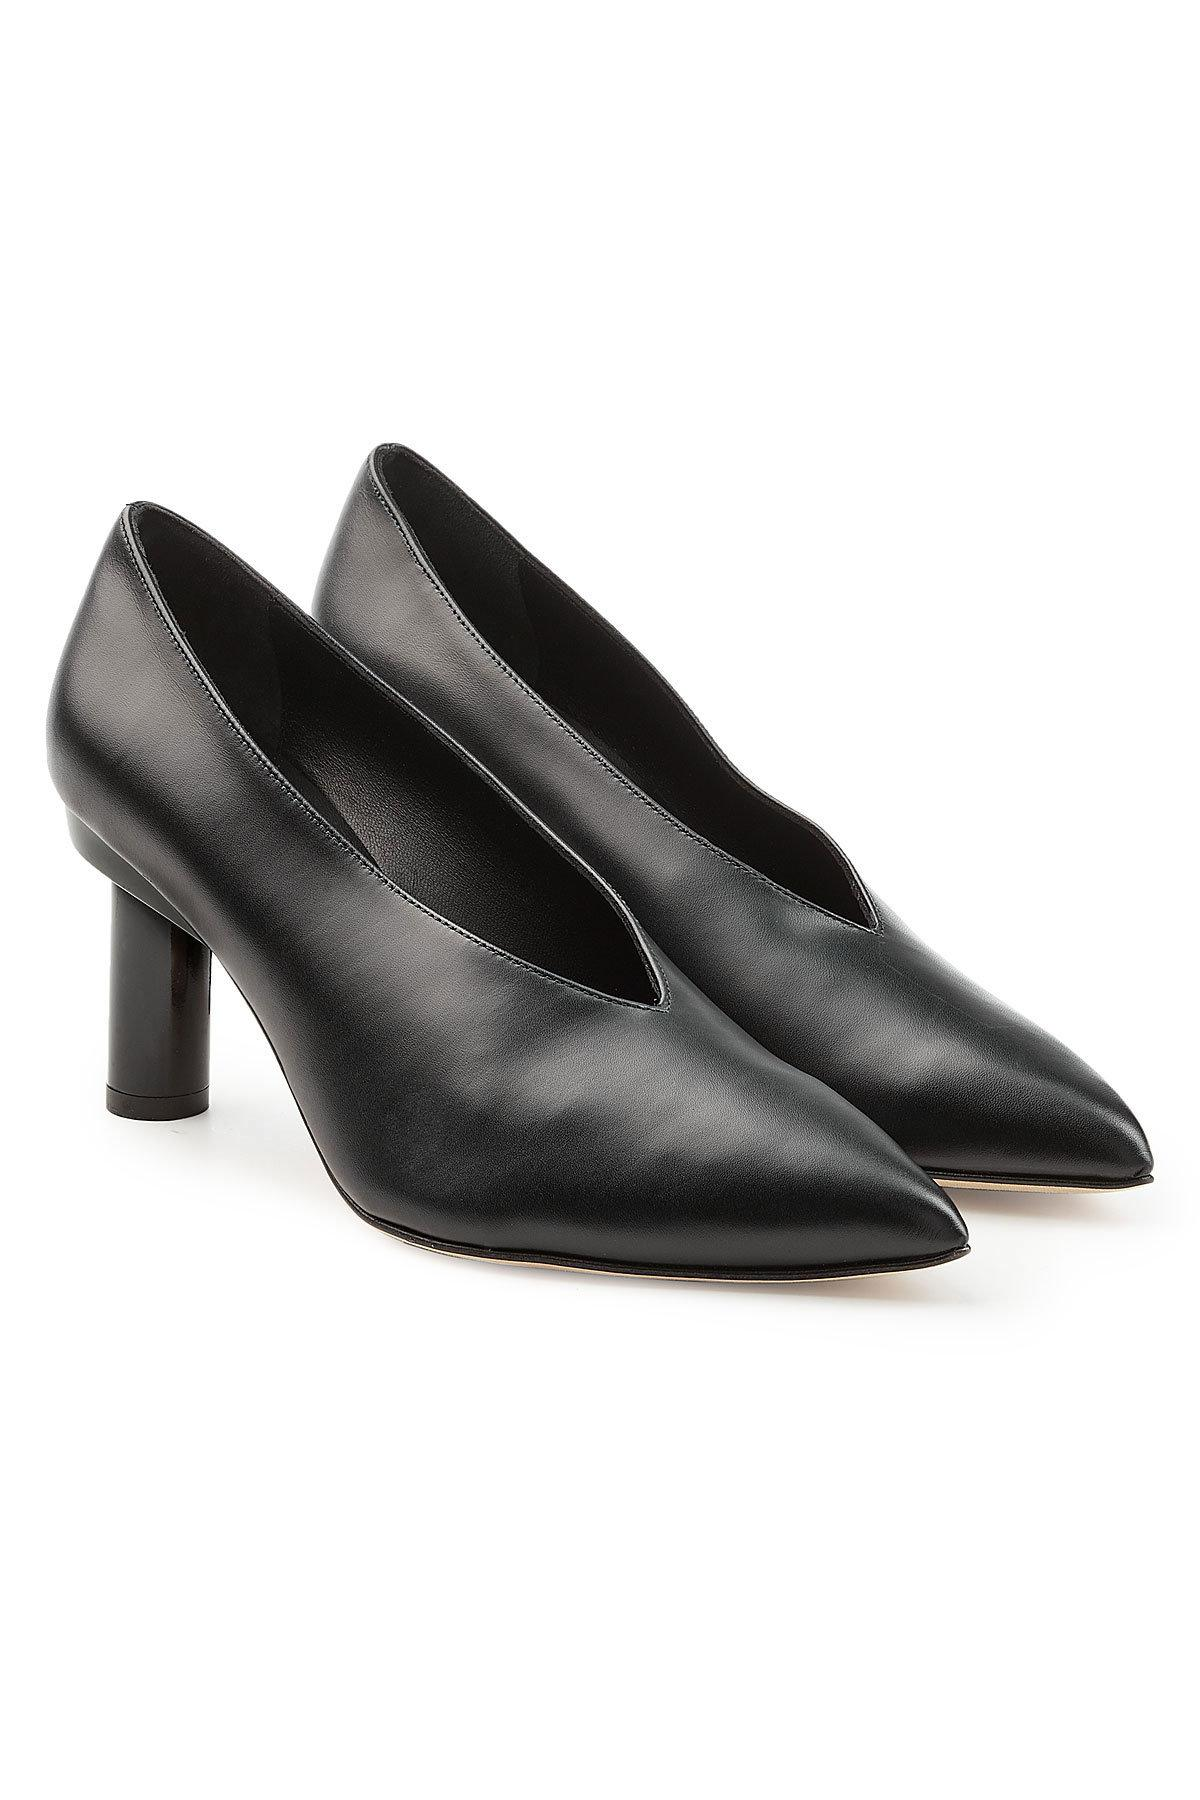 Tibi Pointed Toe Pumps In Black